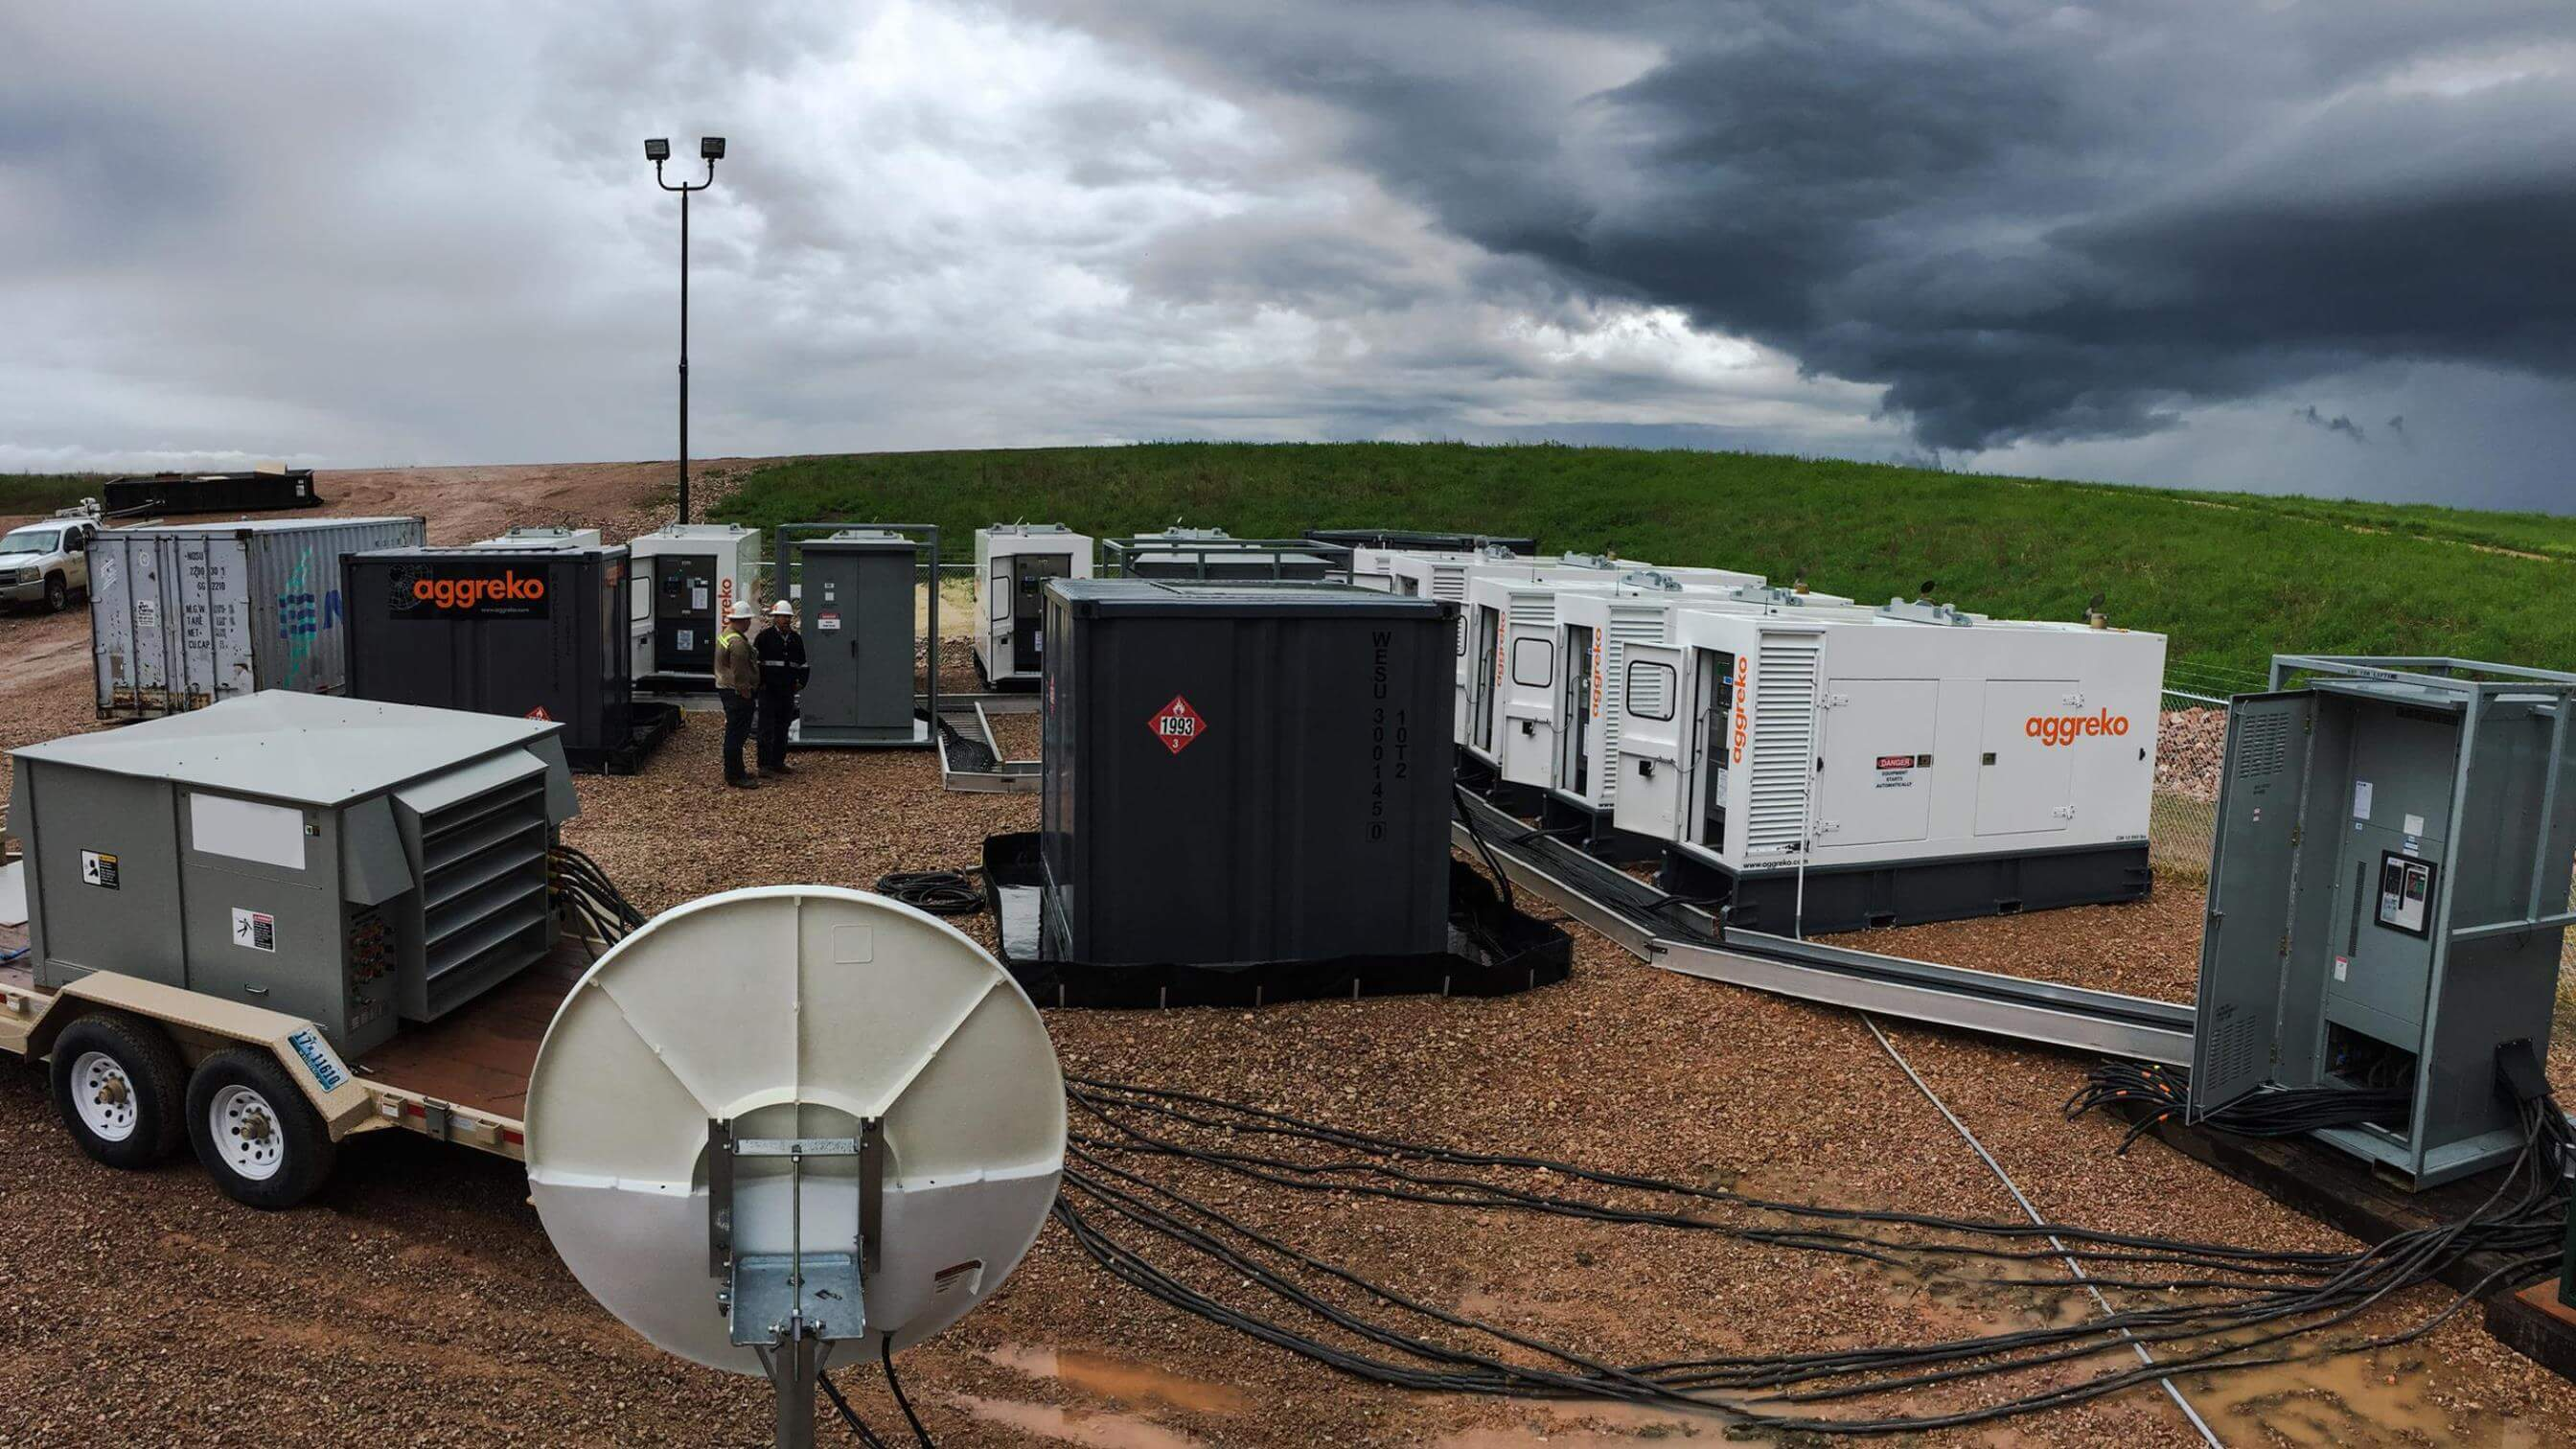 Aggreko equipment in a field under a stormy sky